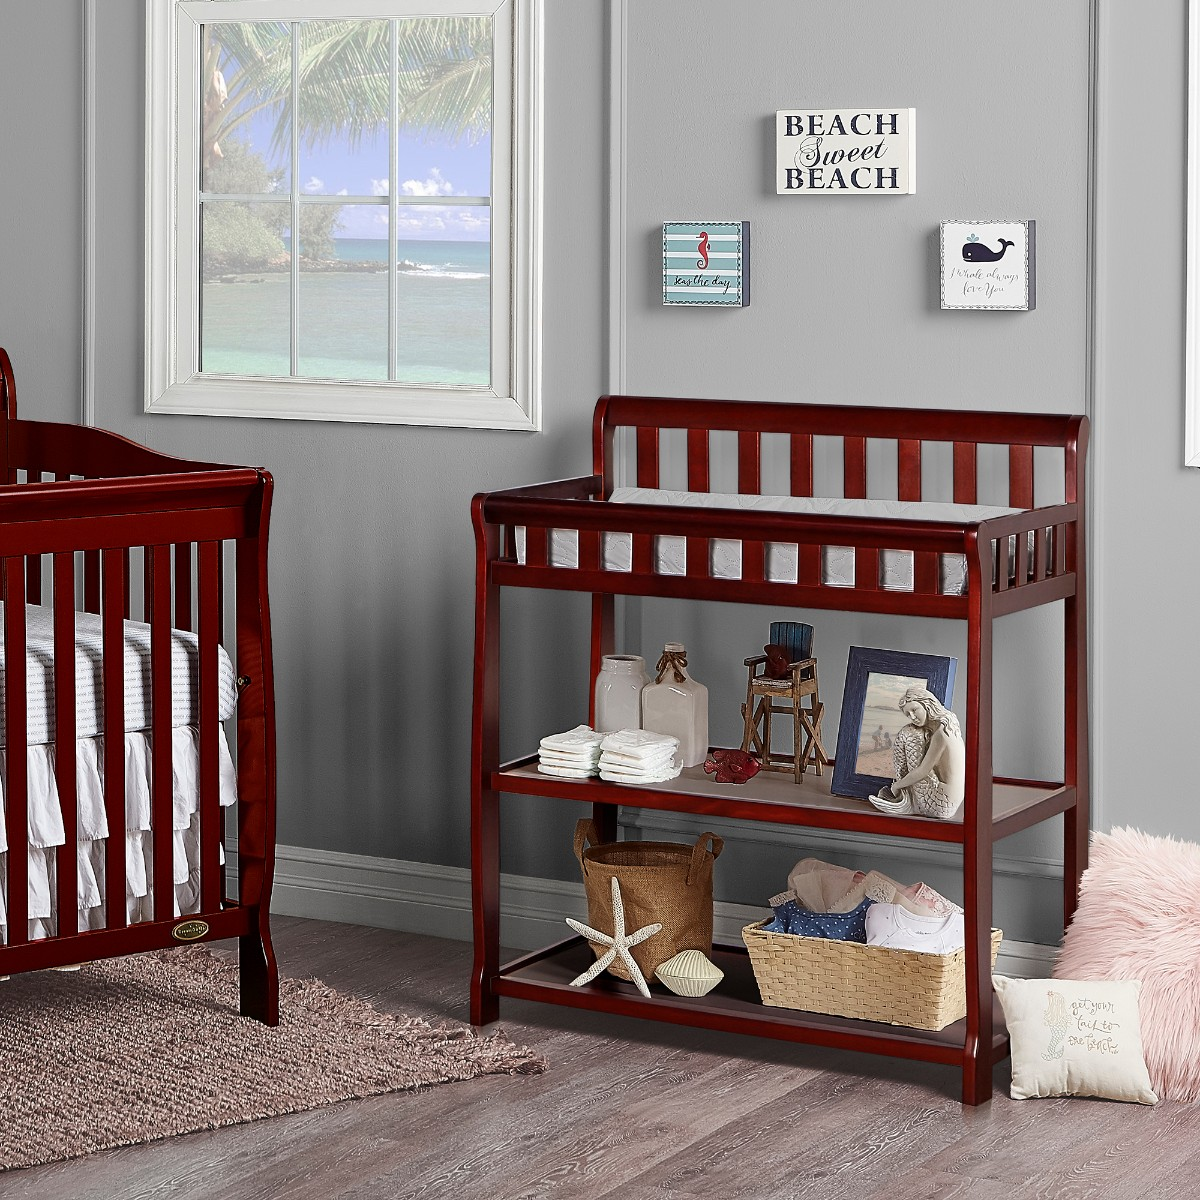 Ashton Changing Table - Dream On Me 604-C